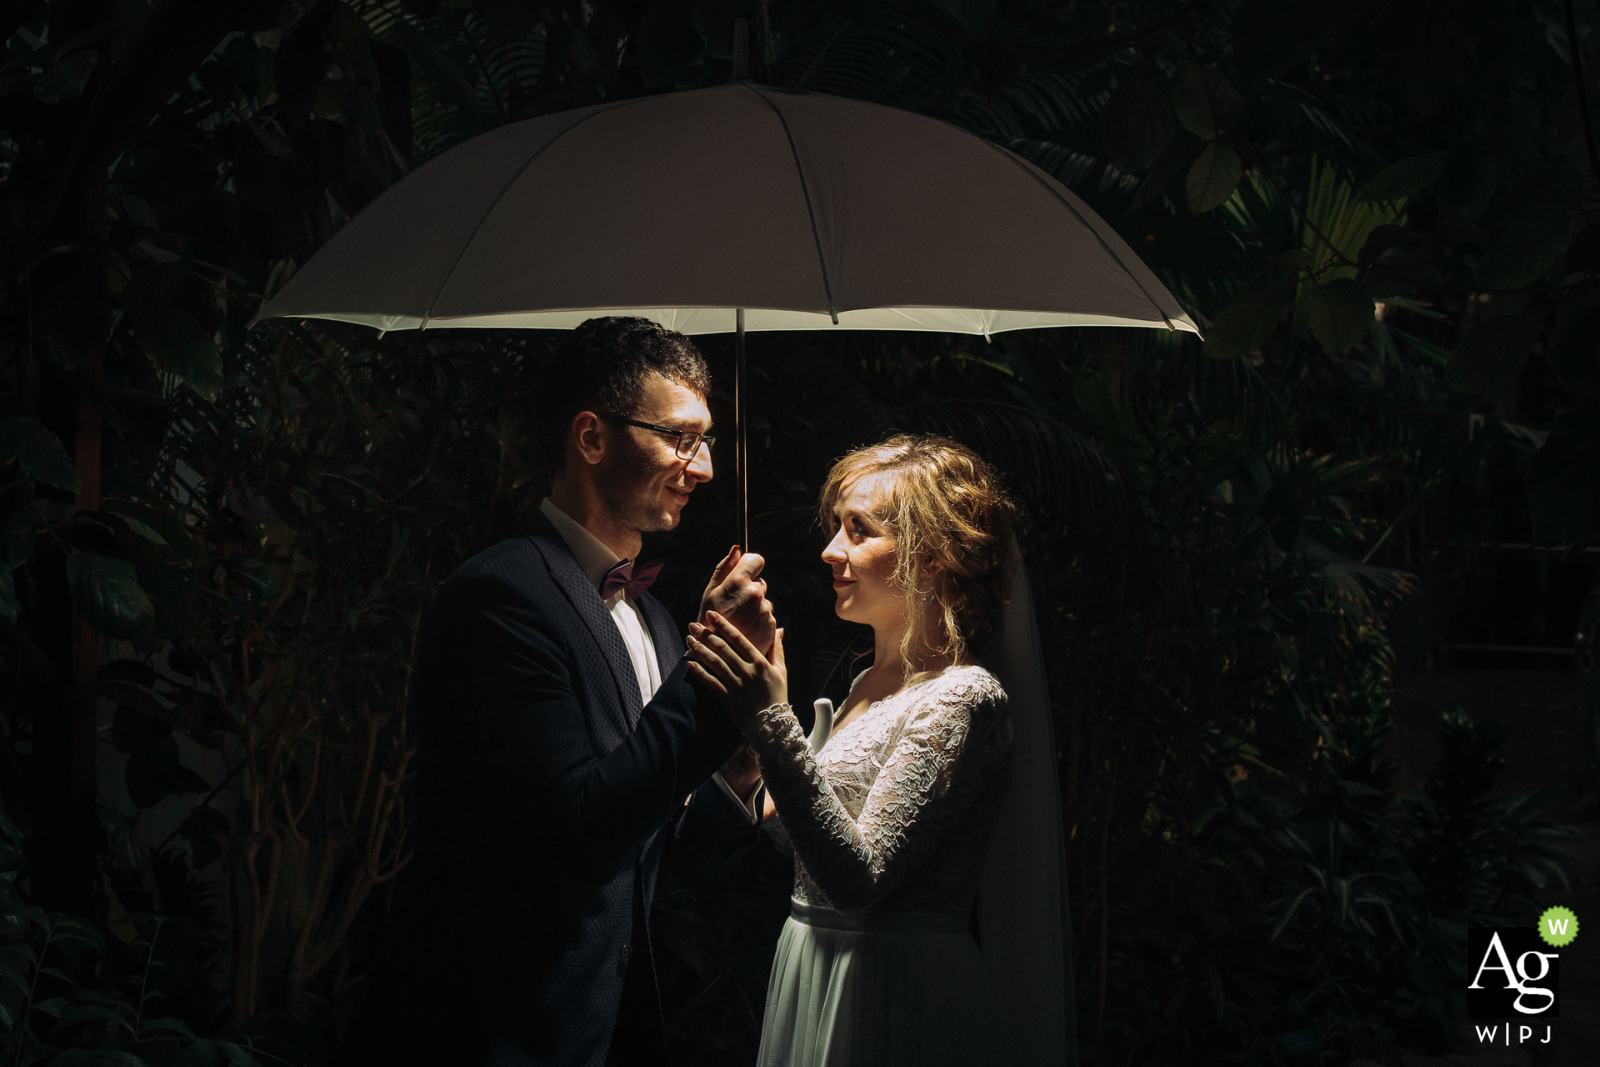 Church of Saint Albert Chmielowski in Lodz, Poland artistic wedding couple portrait of The bride and groom standing under an umbrella during a quick session after leaving the church